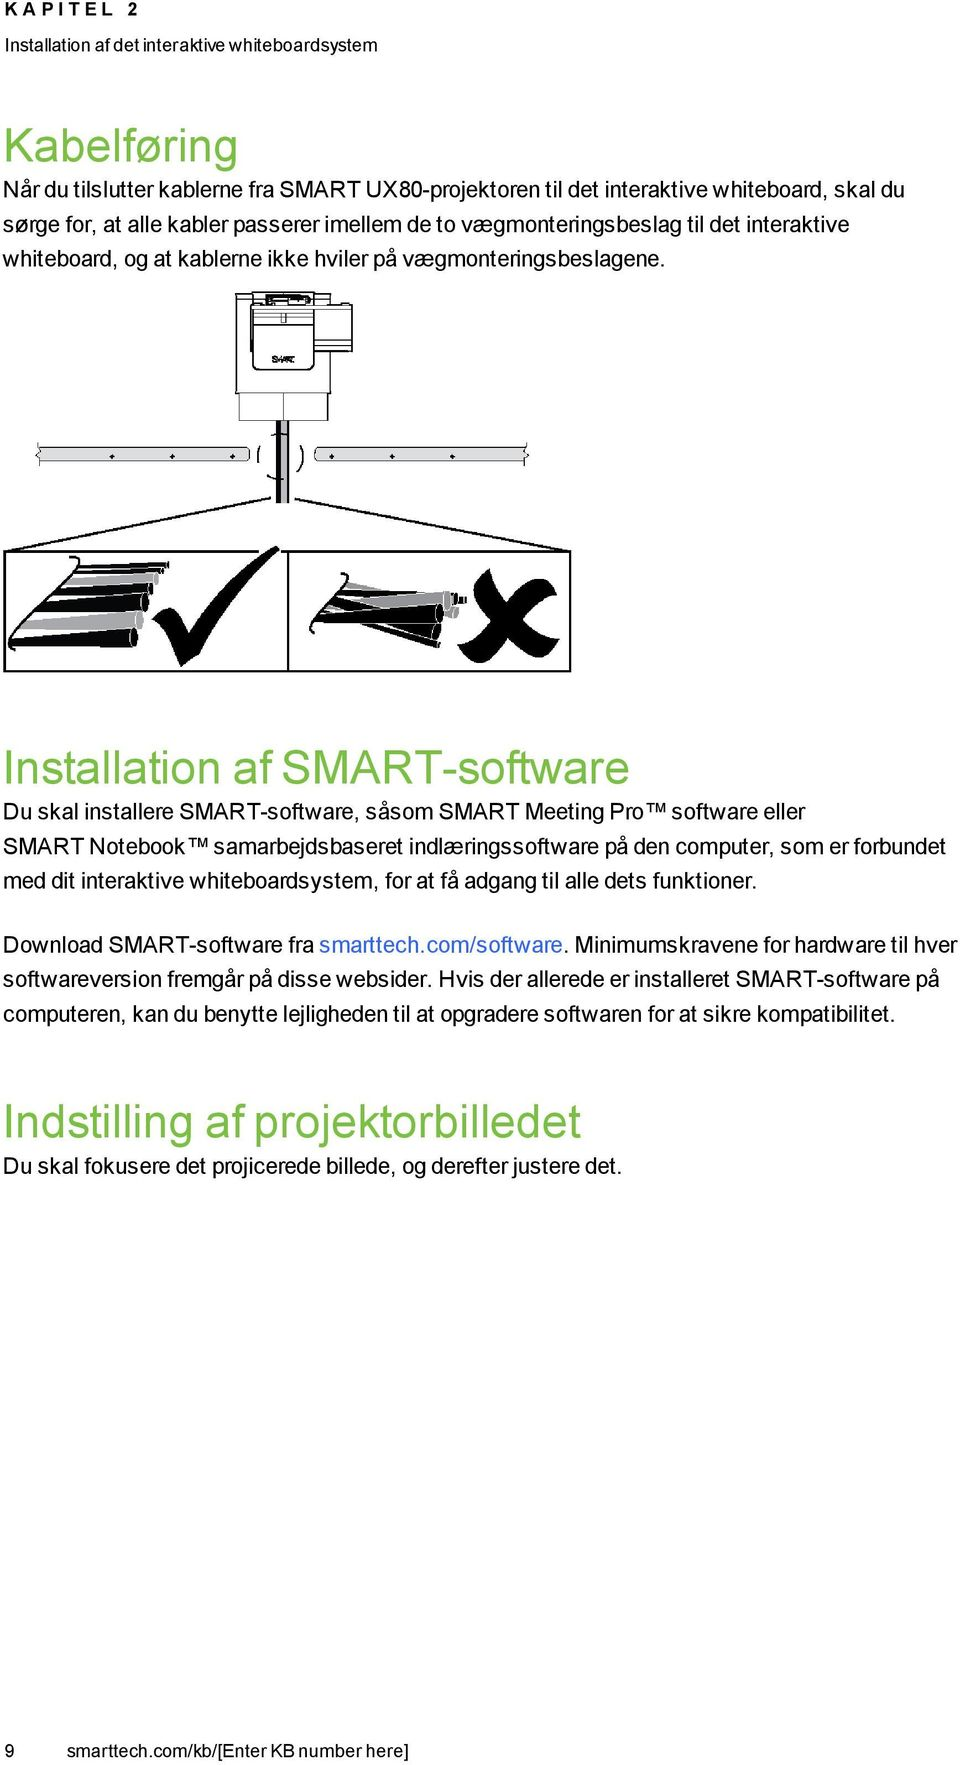 Installation af SMART-software Du skal installere SMART-software, såsom SMART Meeting Pro software eller SMART Notebook samarbejdsbaseret indlæringssoftware på den computer, som er forbundet med dit